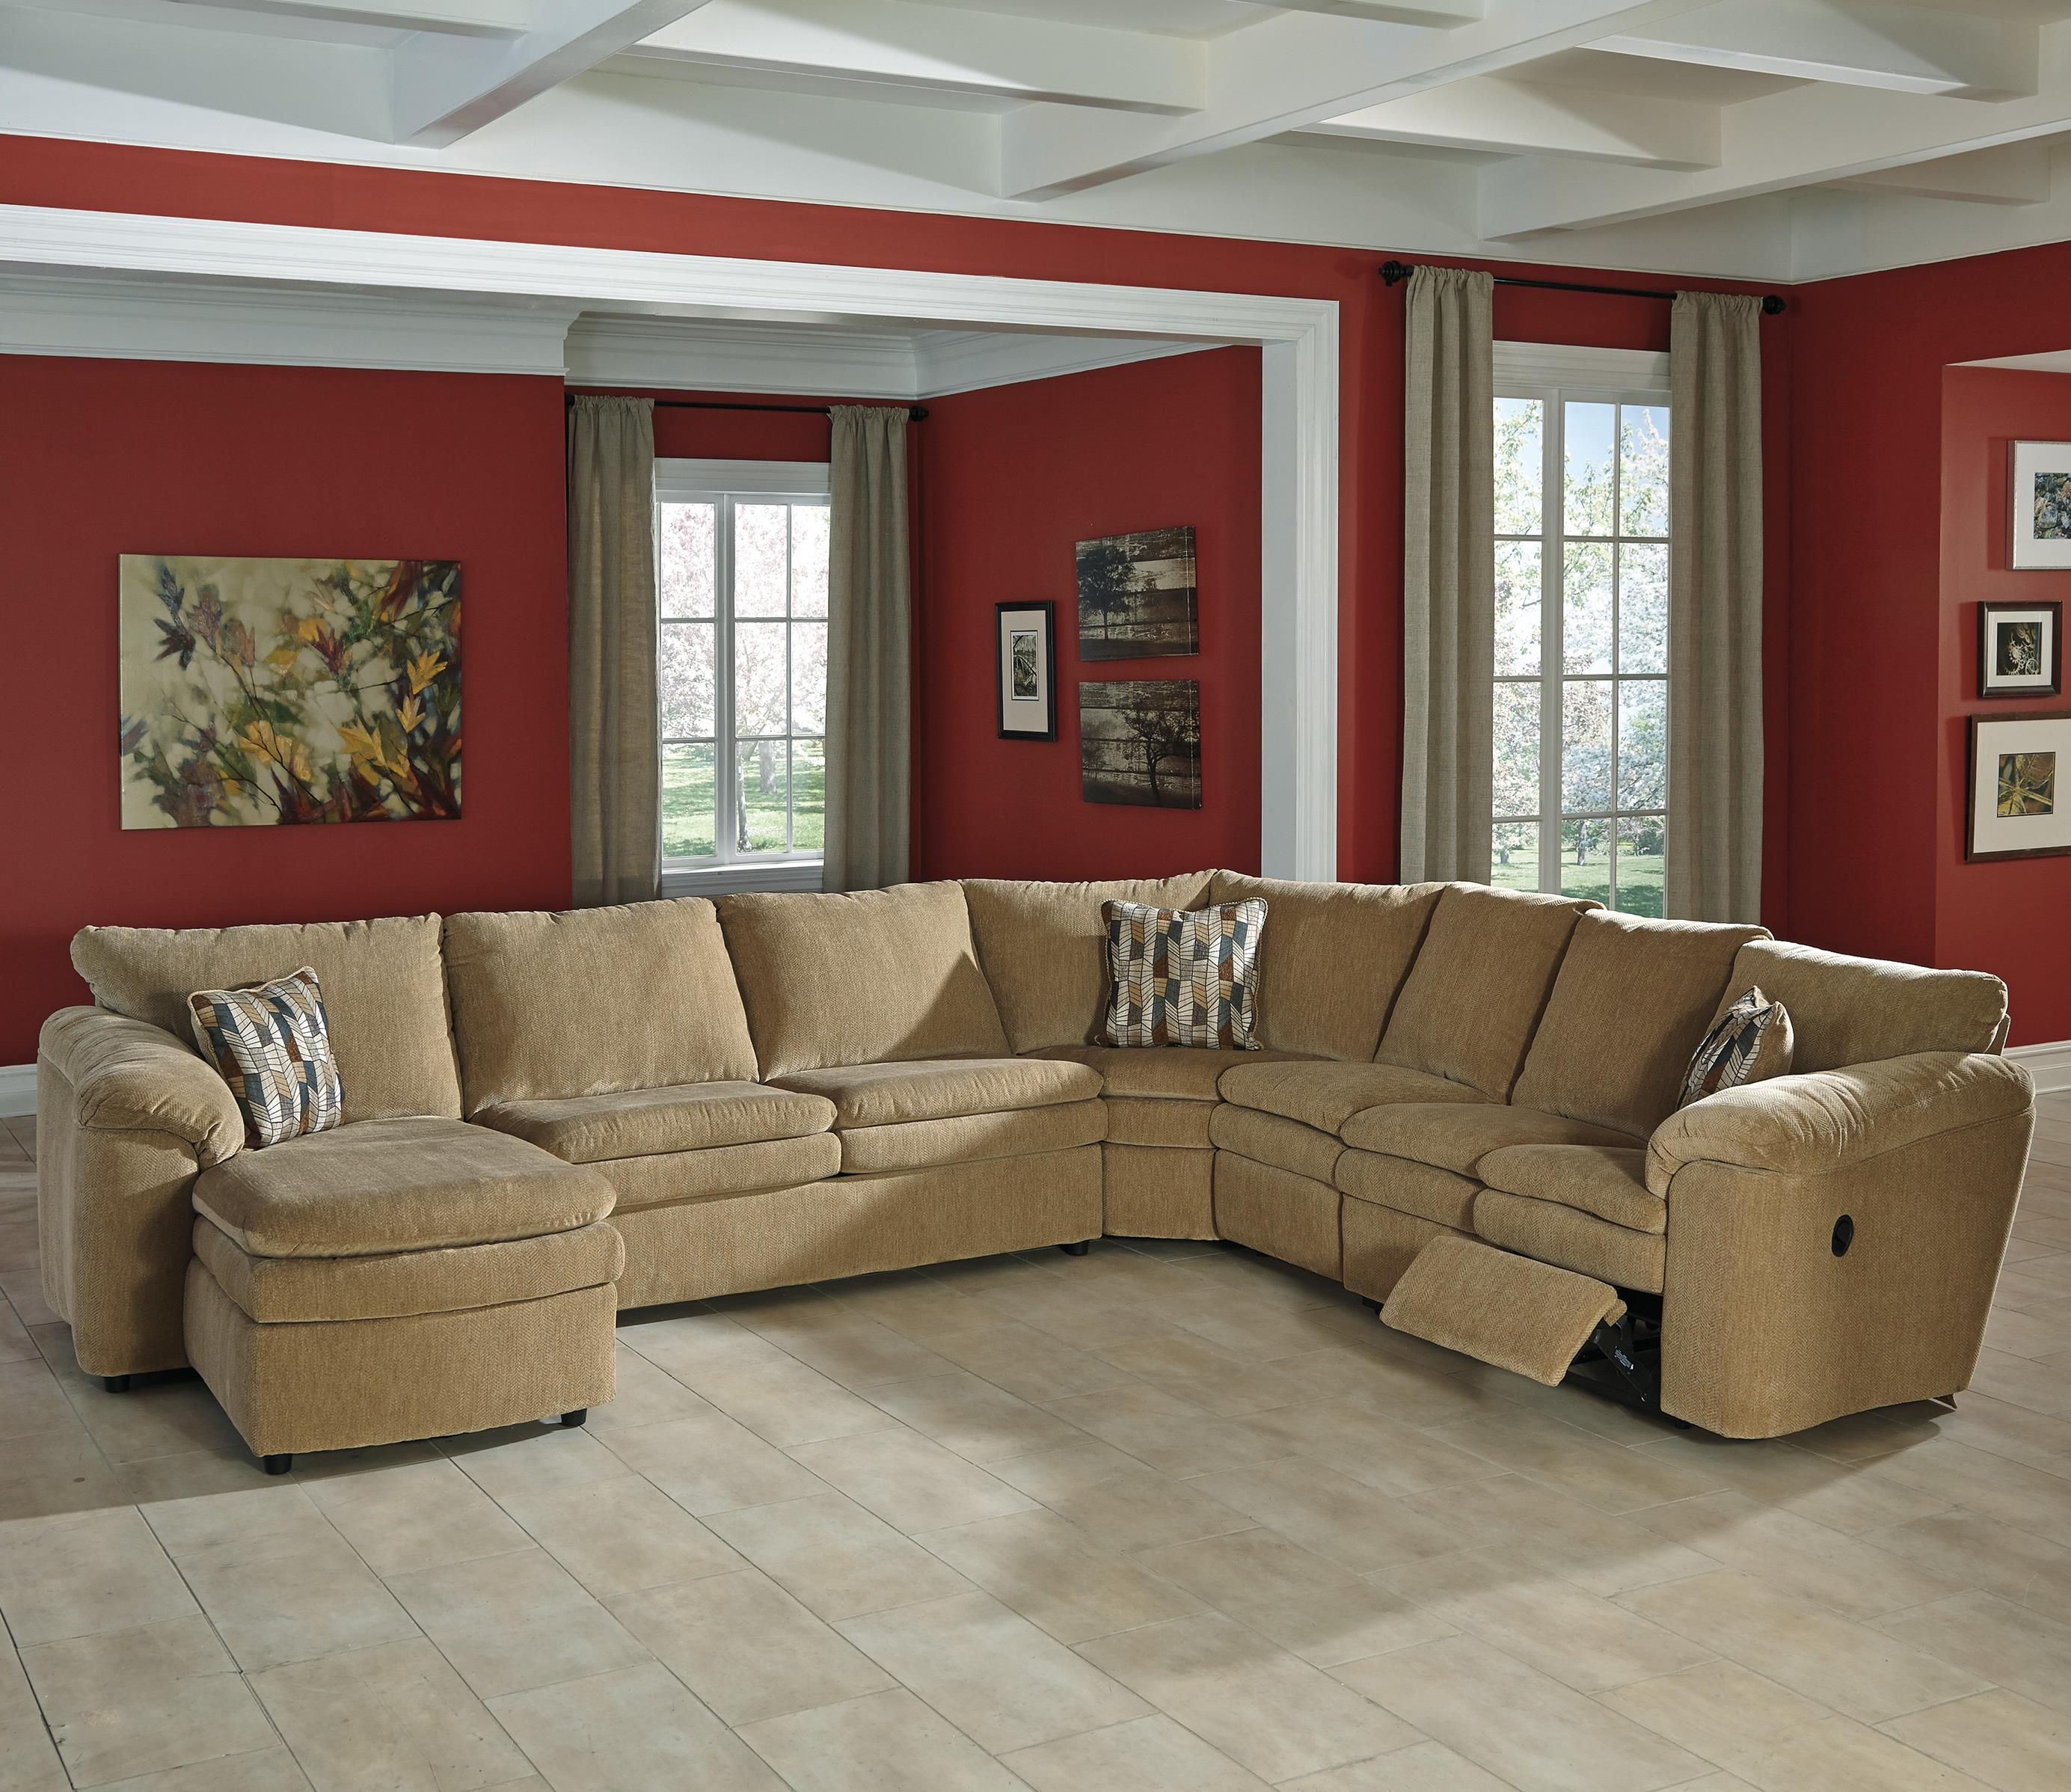 Casual Contemporary 5 Piece Reclining Sectional with Left Chaise